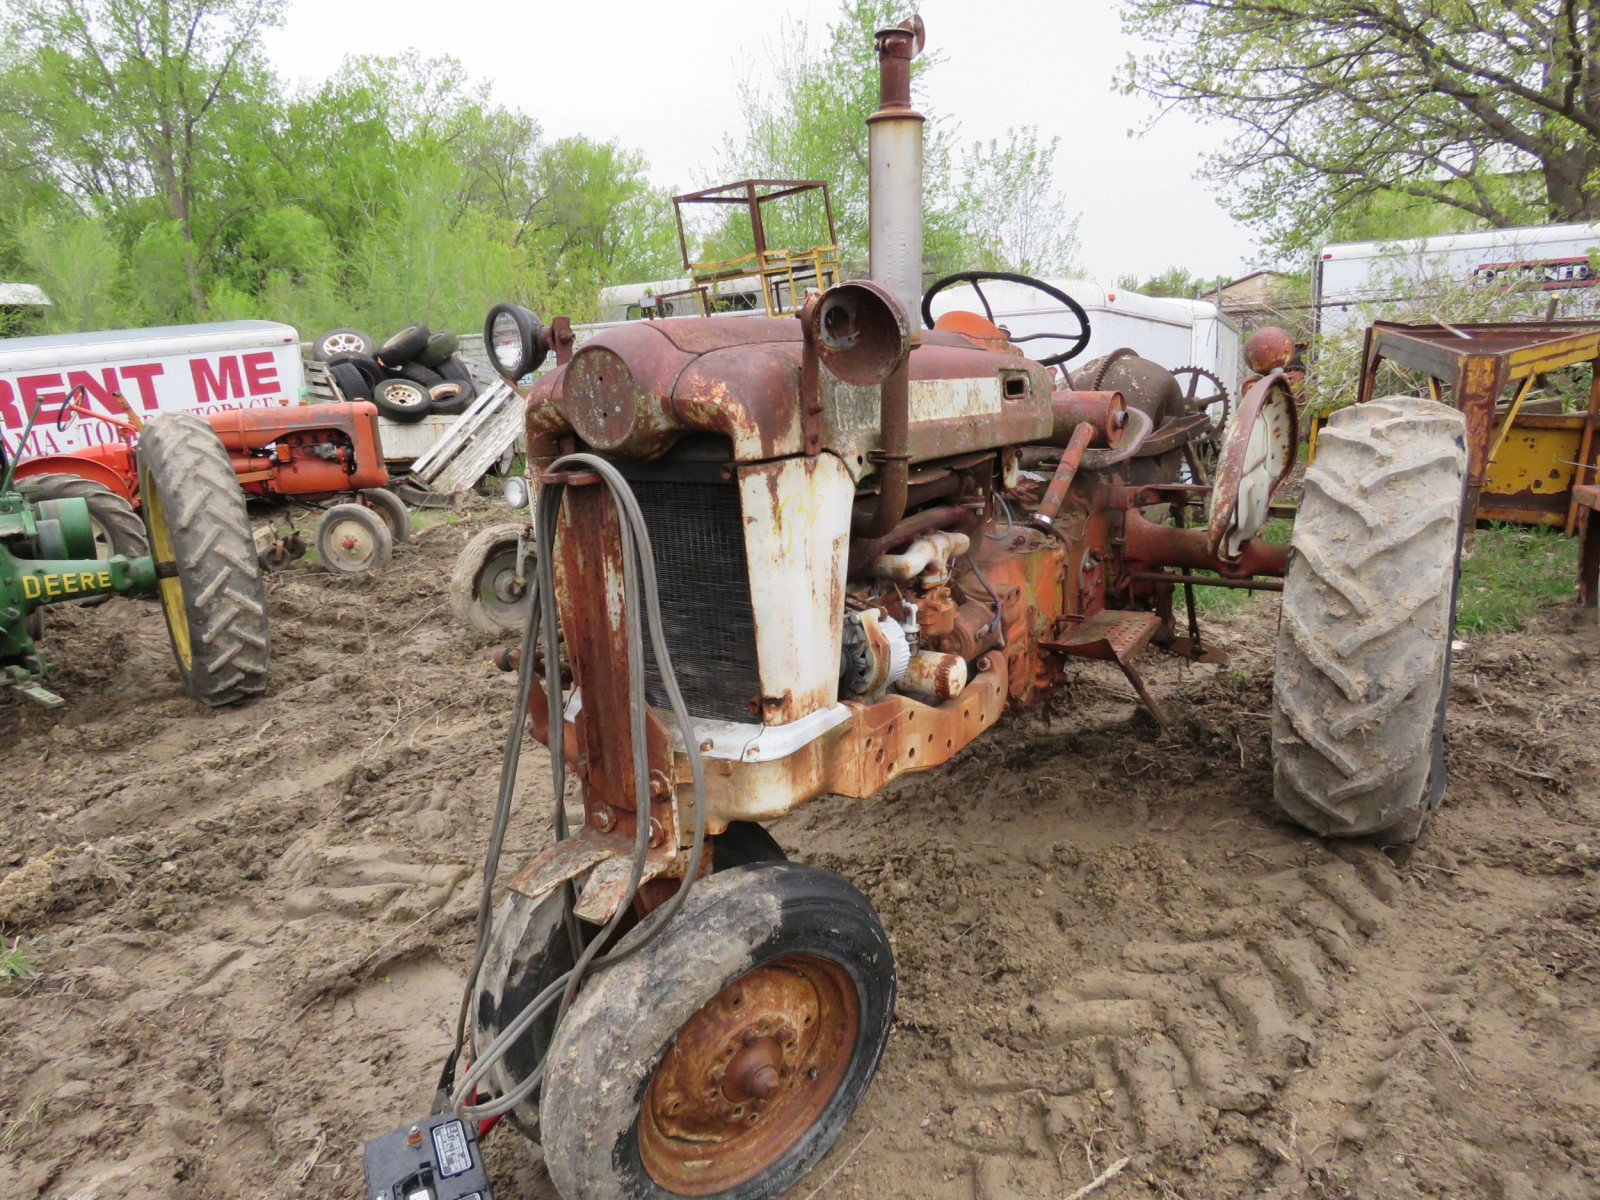 Ford Tractor for Project or Parts - Image 1